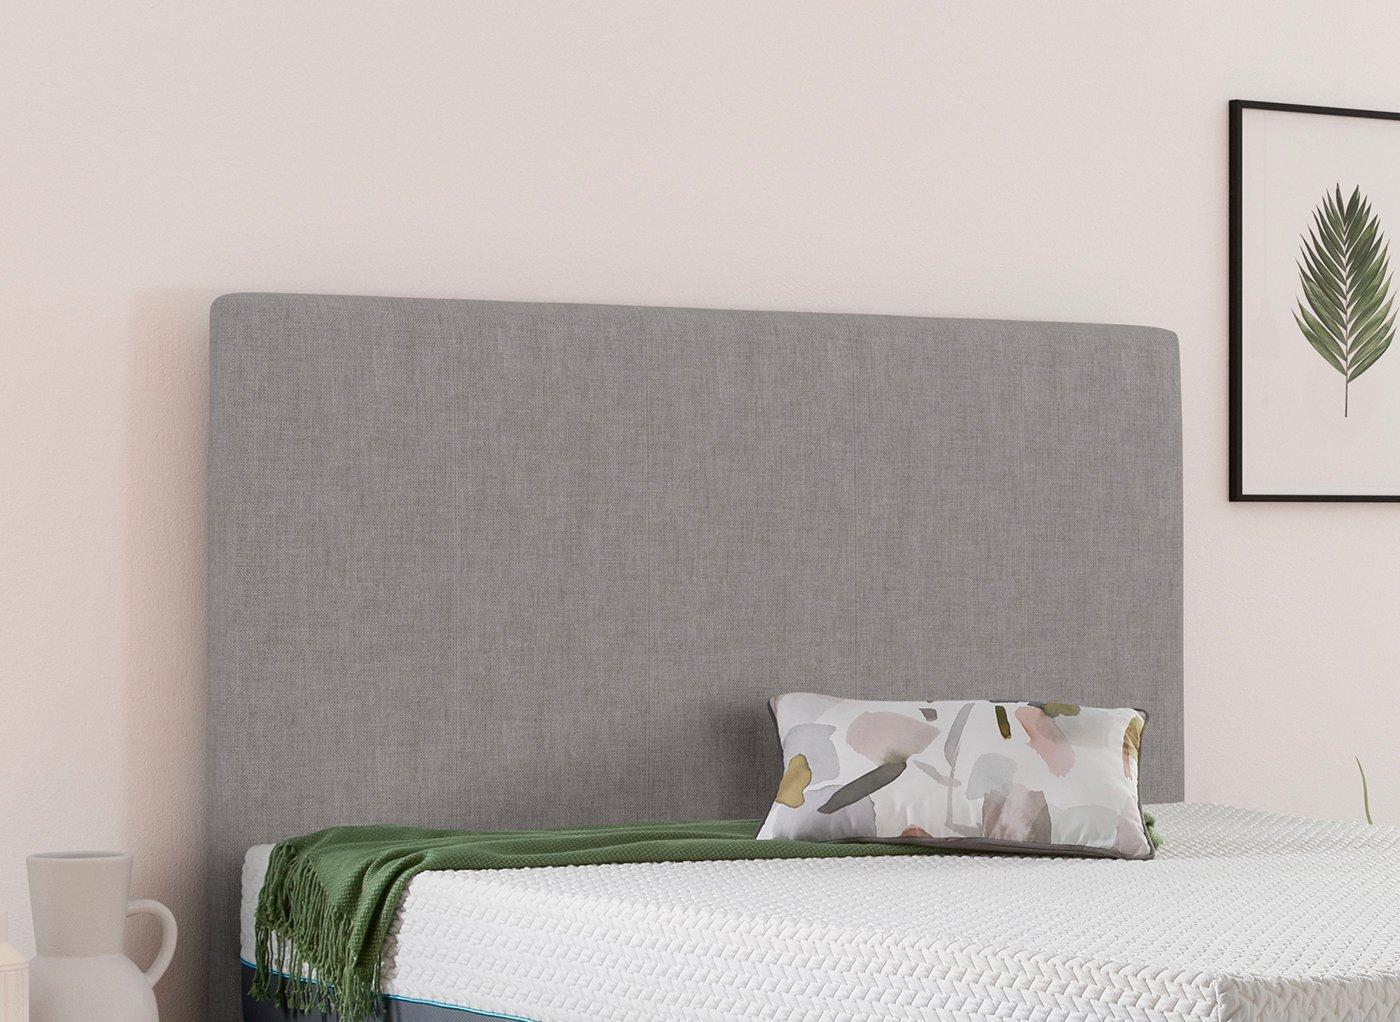 sleepmotion-900i-headboard